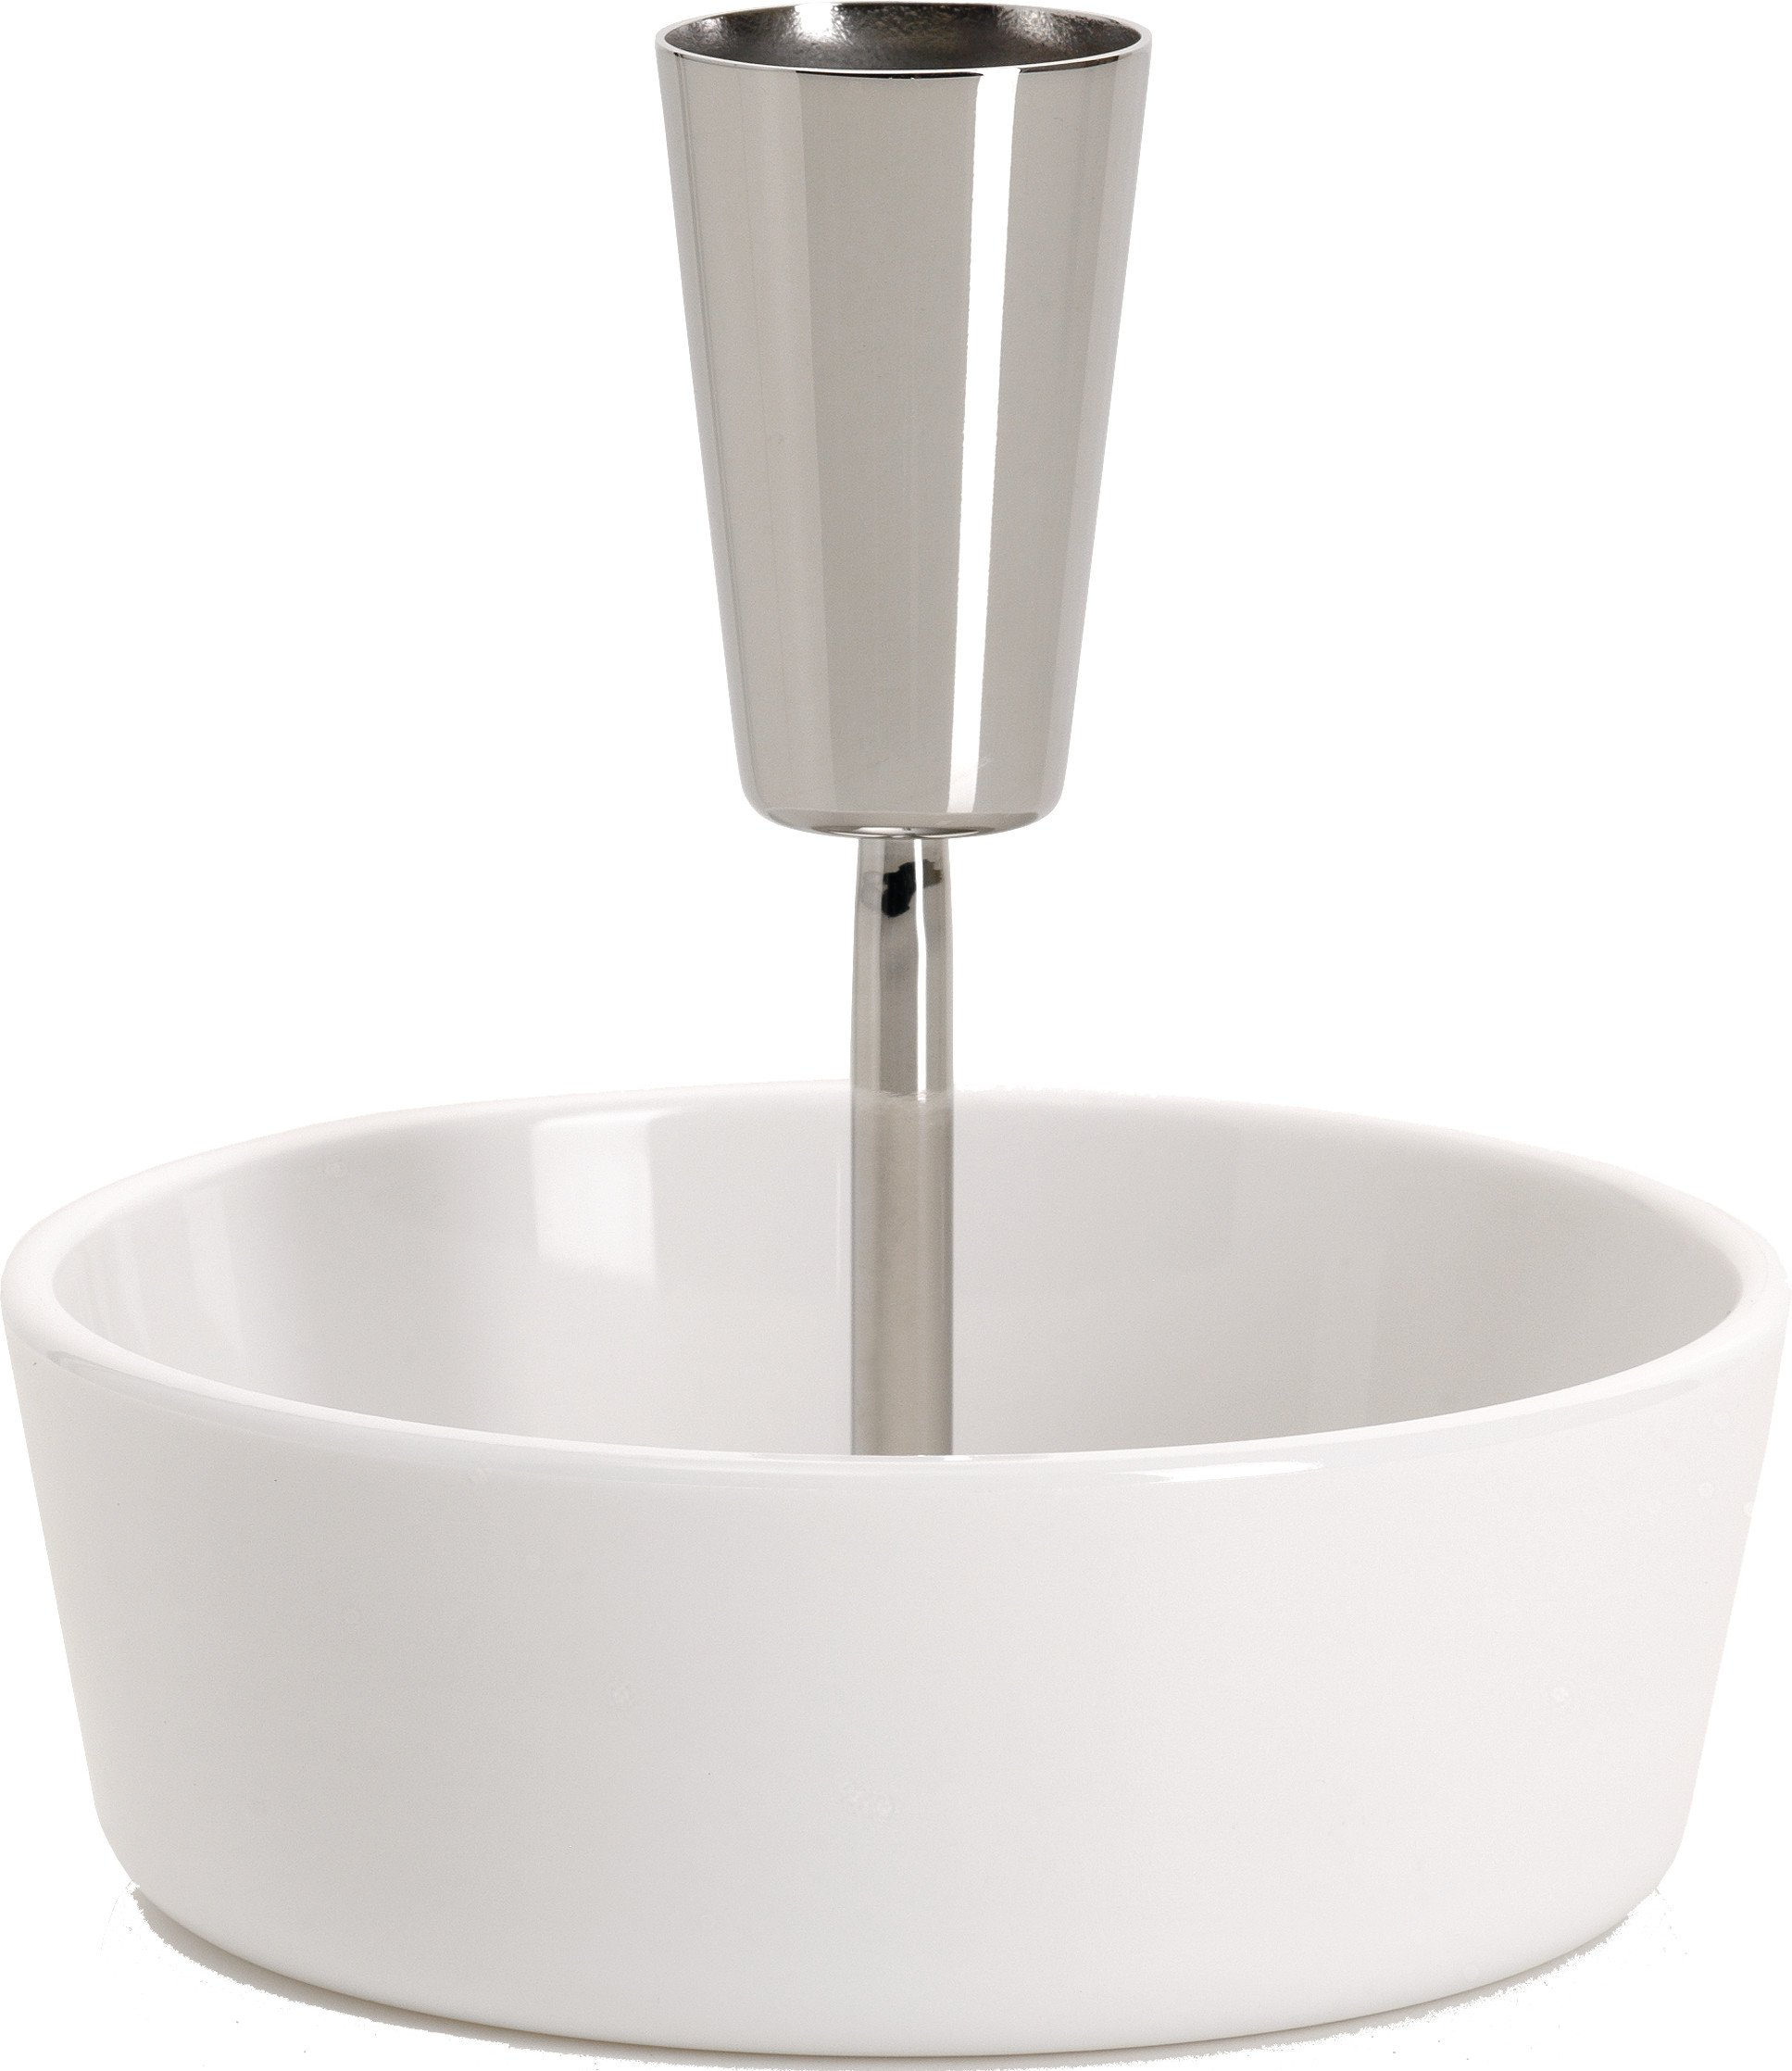 Alessi ''Ape'' Bowl For Olives in Thermoplastic Resin With Toothpick Holder in 18/10 Stainless Steel Mirror Polished, White by Alessi